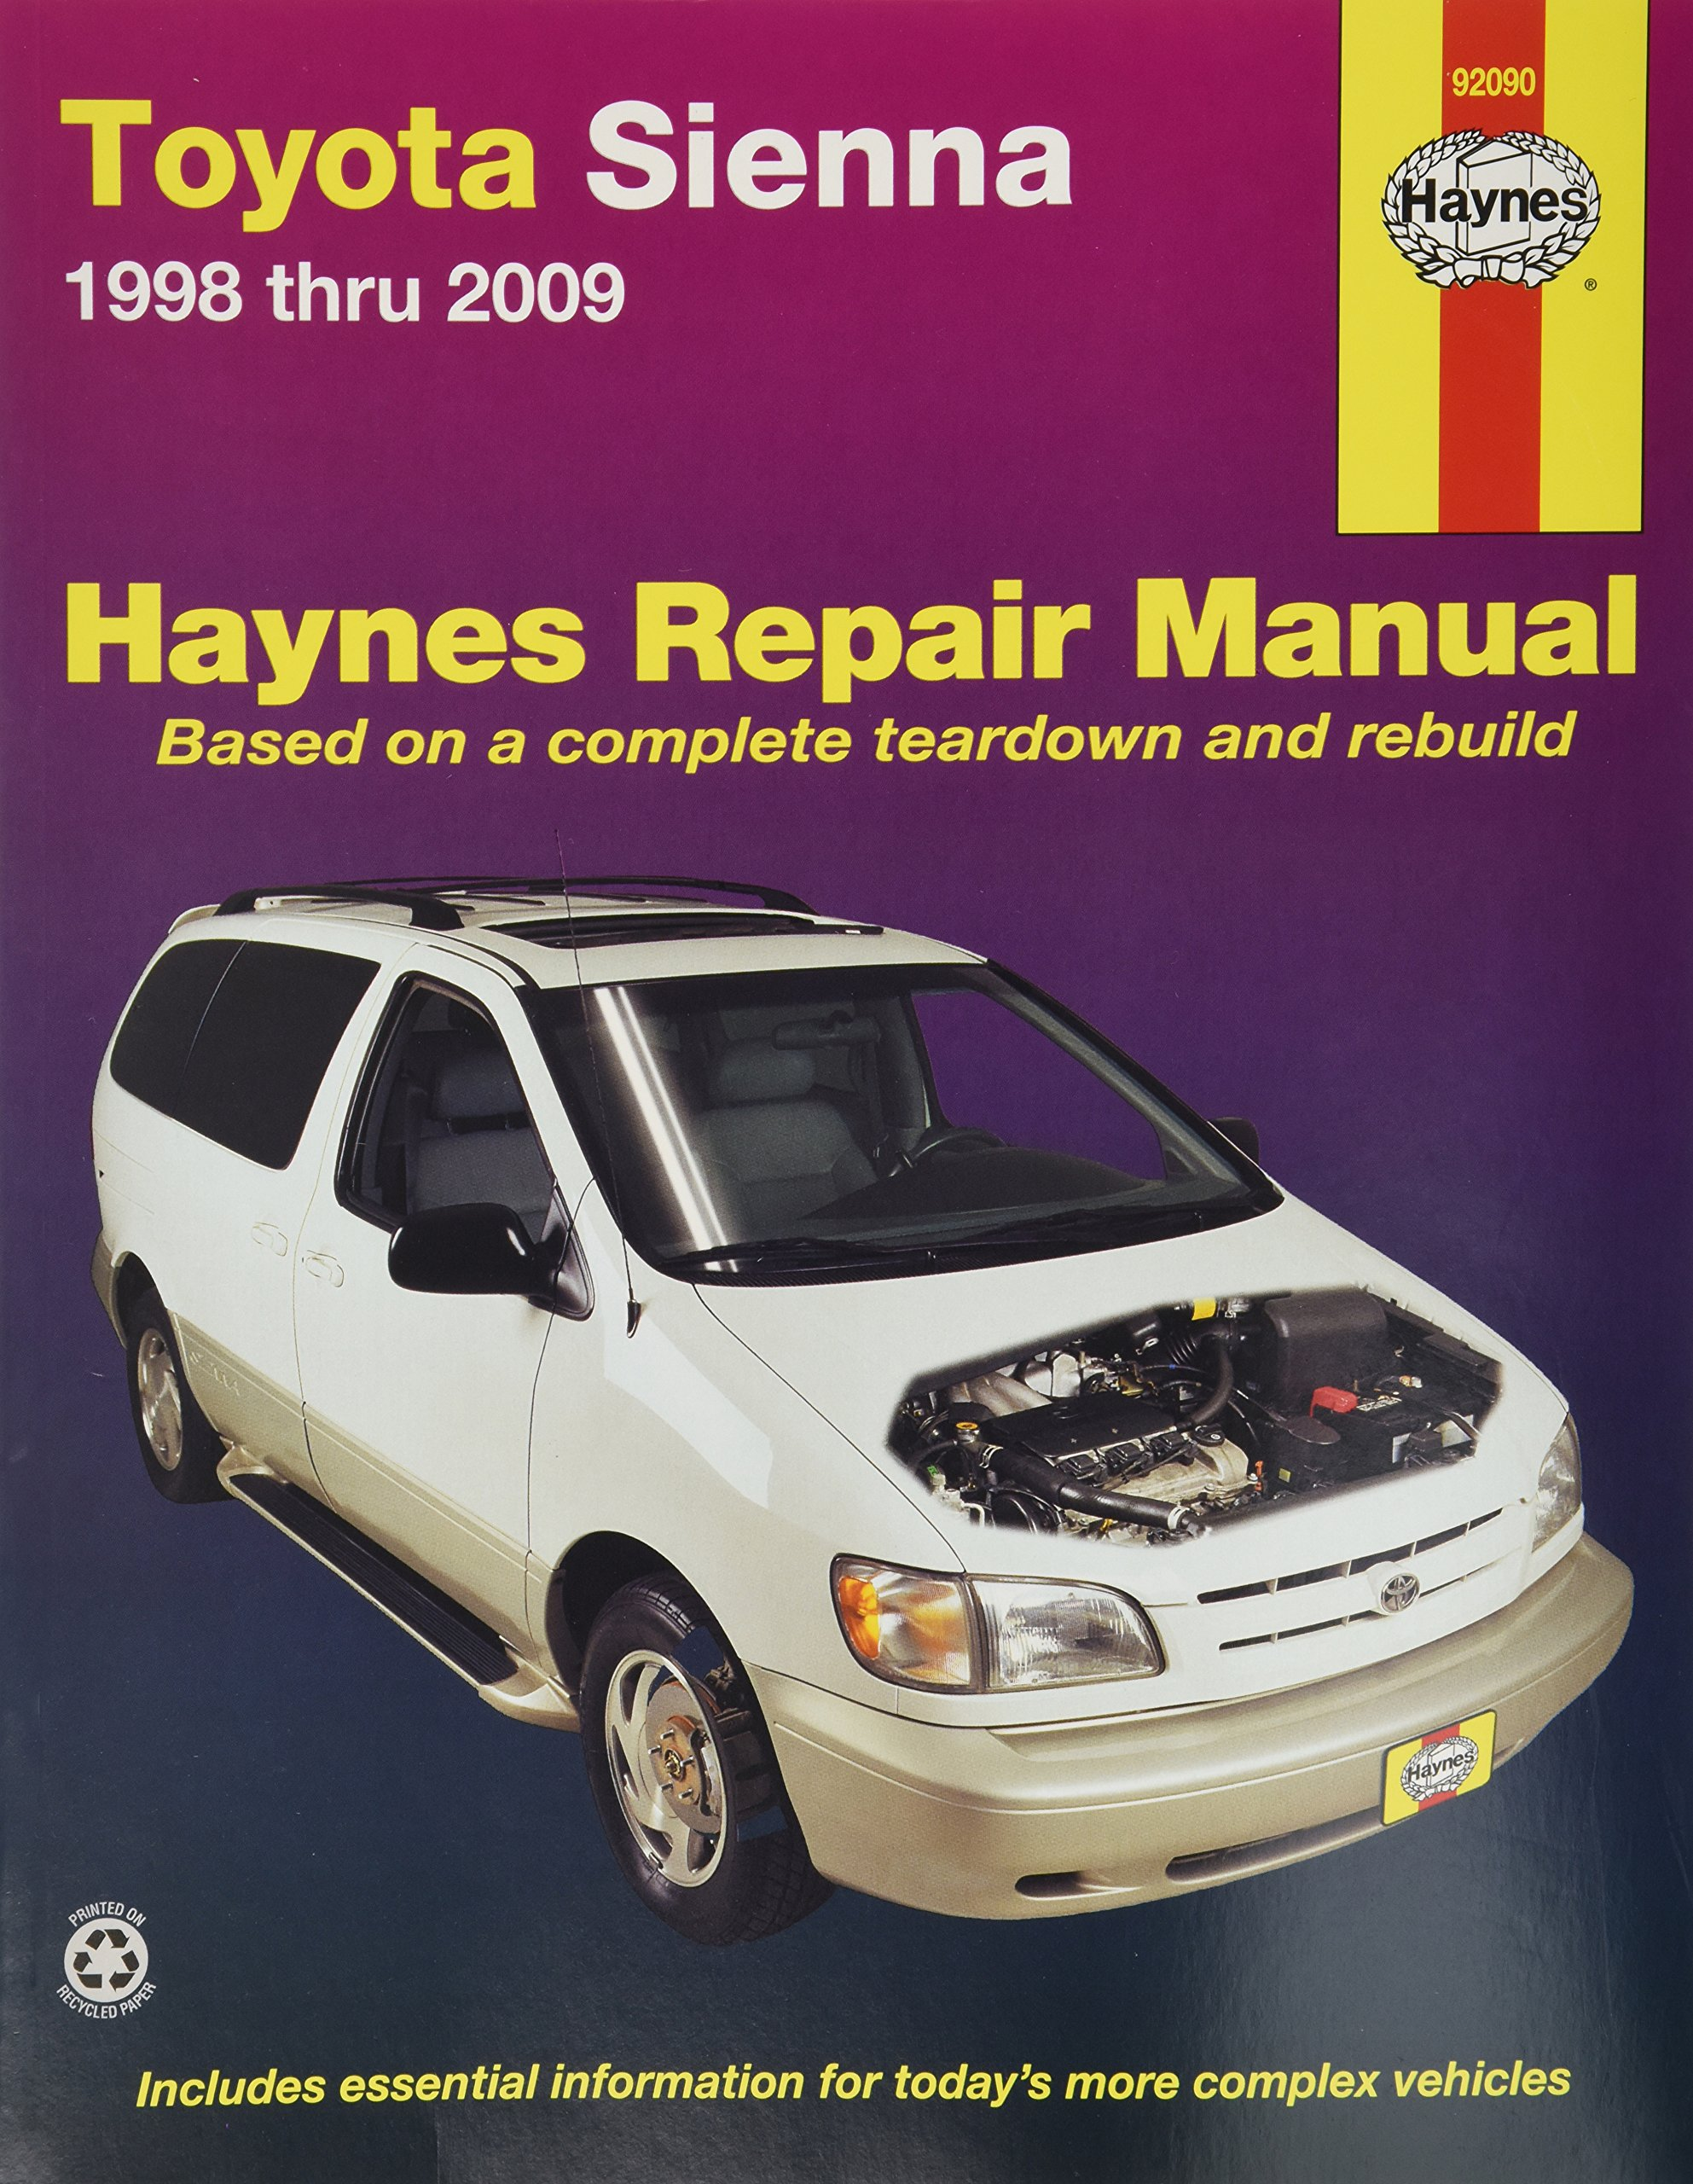 Toyota Sienna Service Manual: Inspection